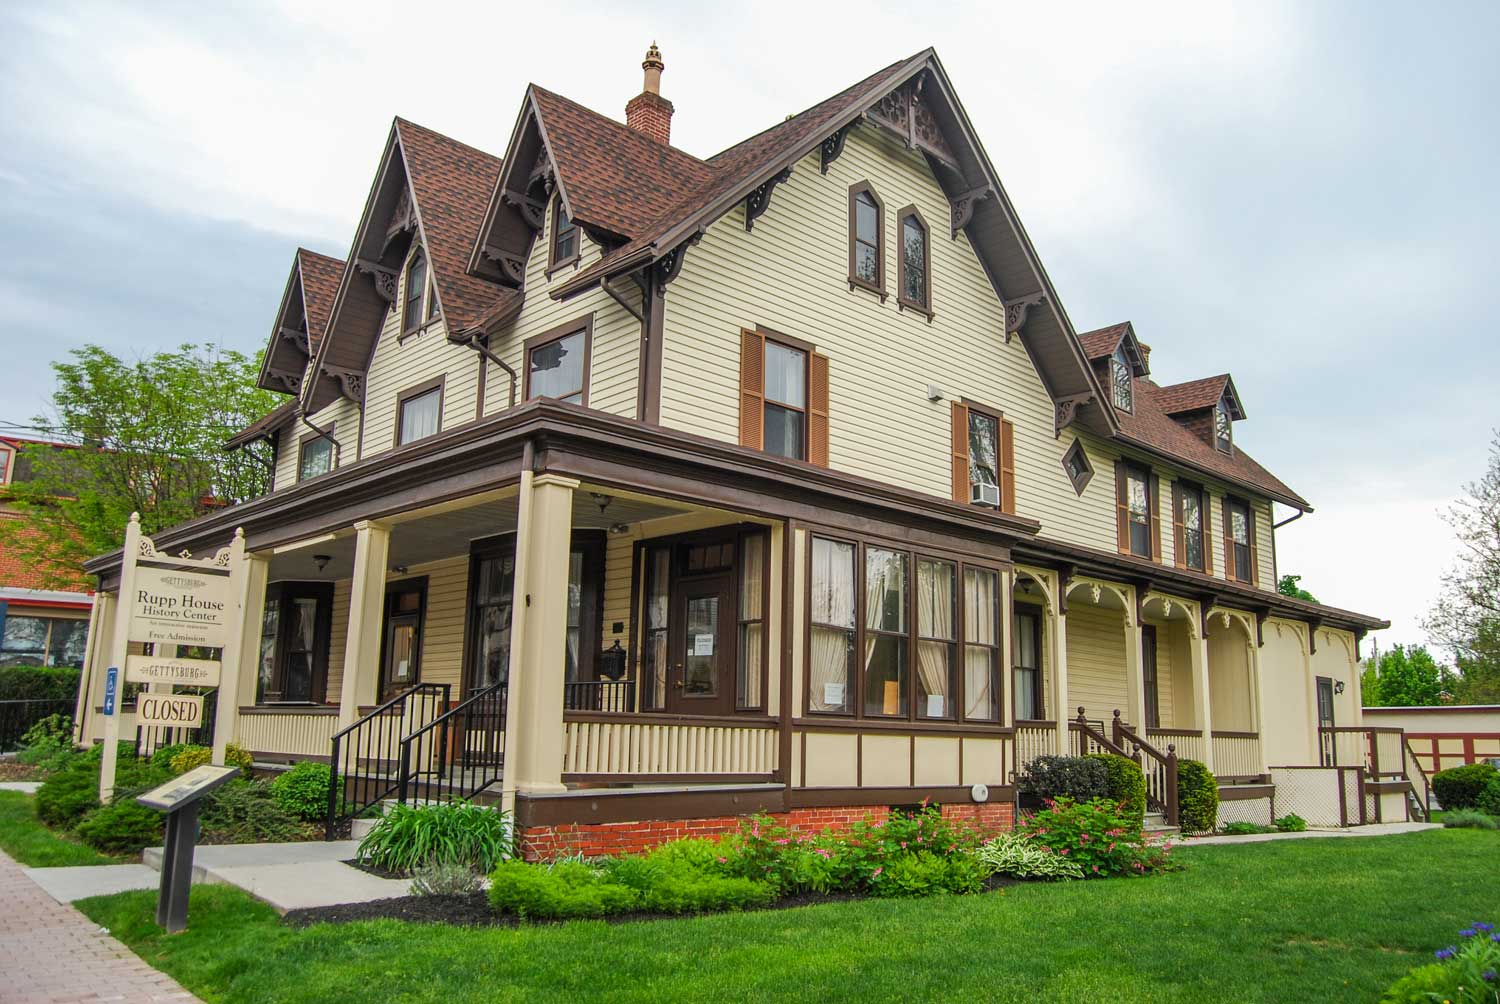 The Rupp House on Baltimore Street in downtown Gettysburg features a museum showing was life was like for civilians during the Civil War, particularly the Rupp family who lived in the home. (Stephanie Ritenbaugh/Post-Gazette)